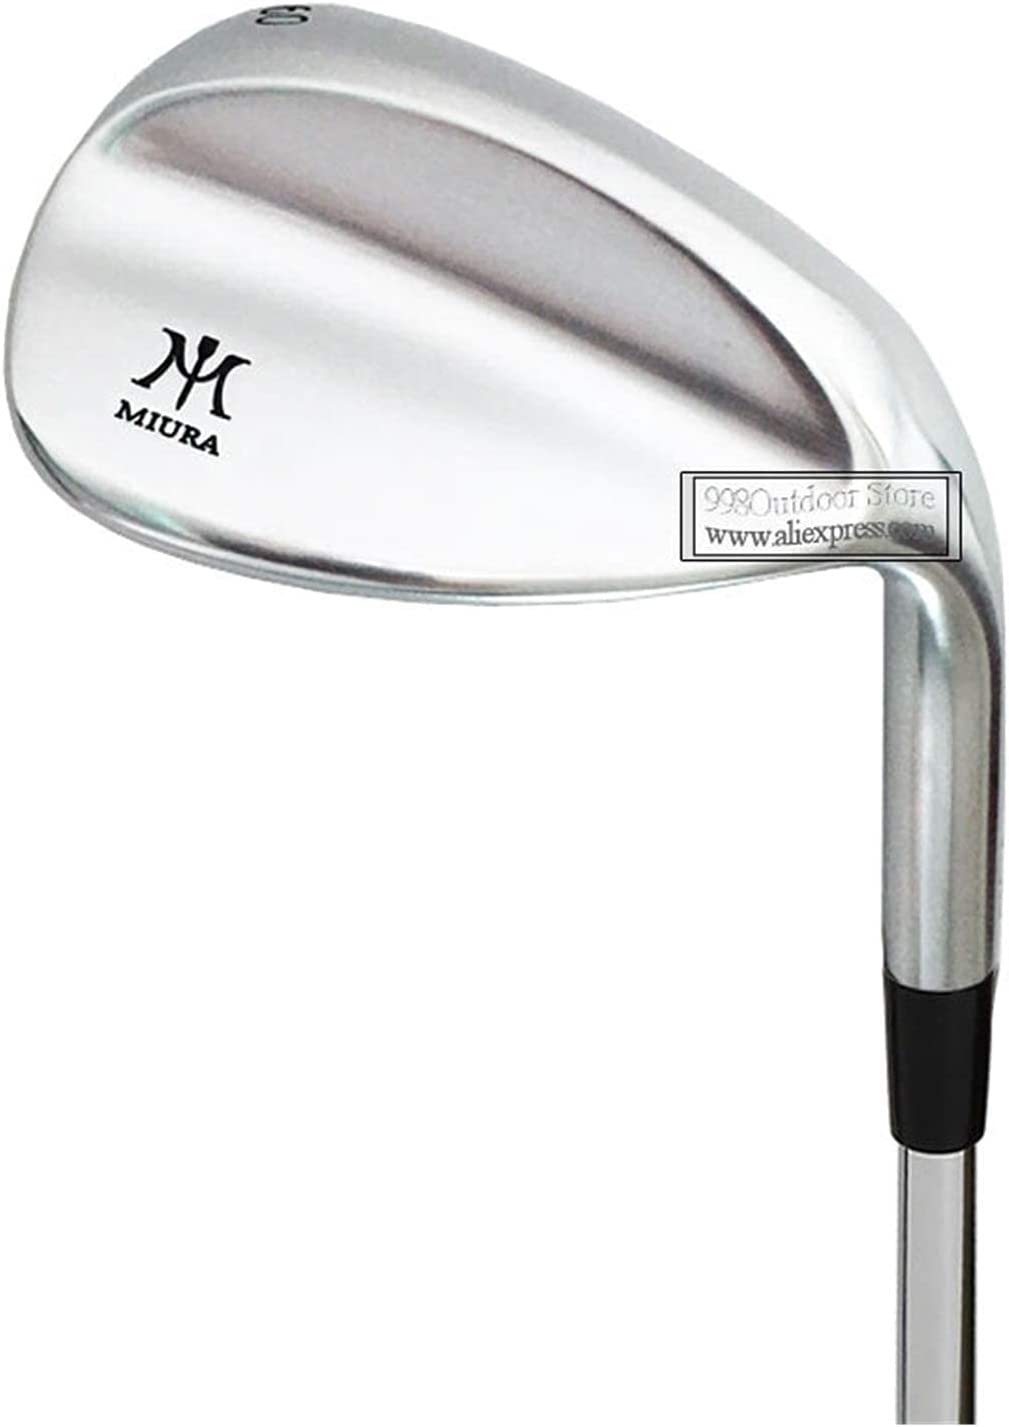 SMYONGPING Golf Club Austin Mall Accessories Right New Backpack 2021 model Wedges